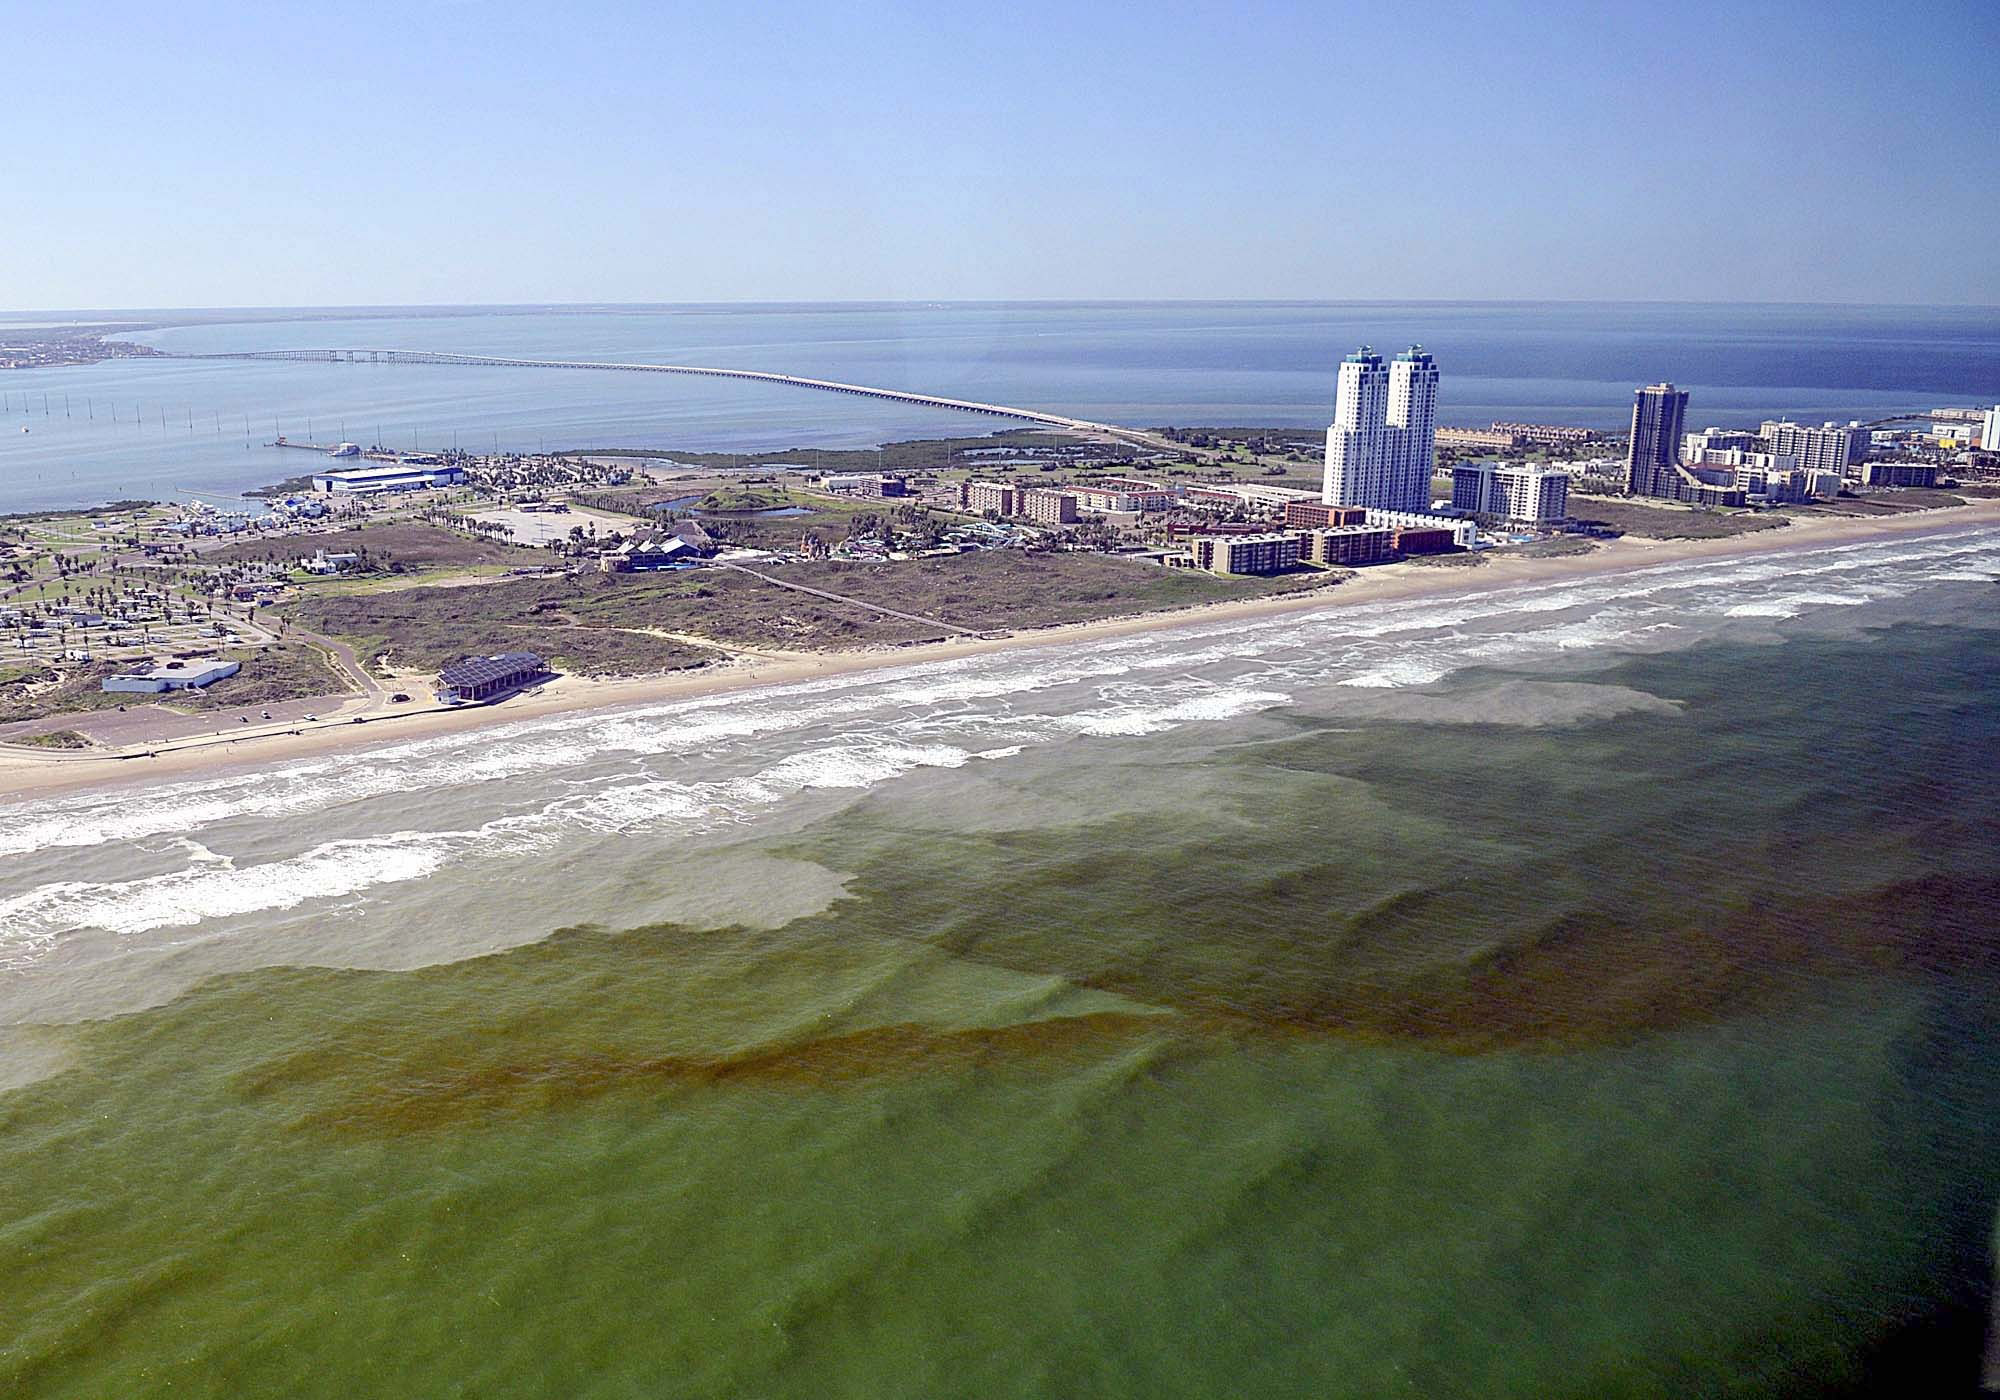 Blooms of harmful algae like this one off the coast of Texas